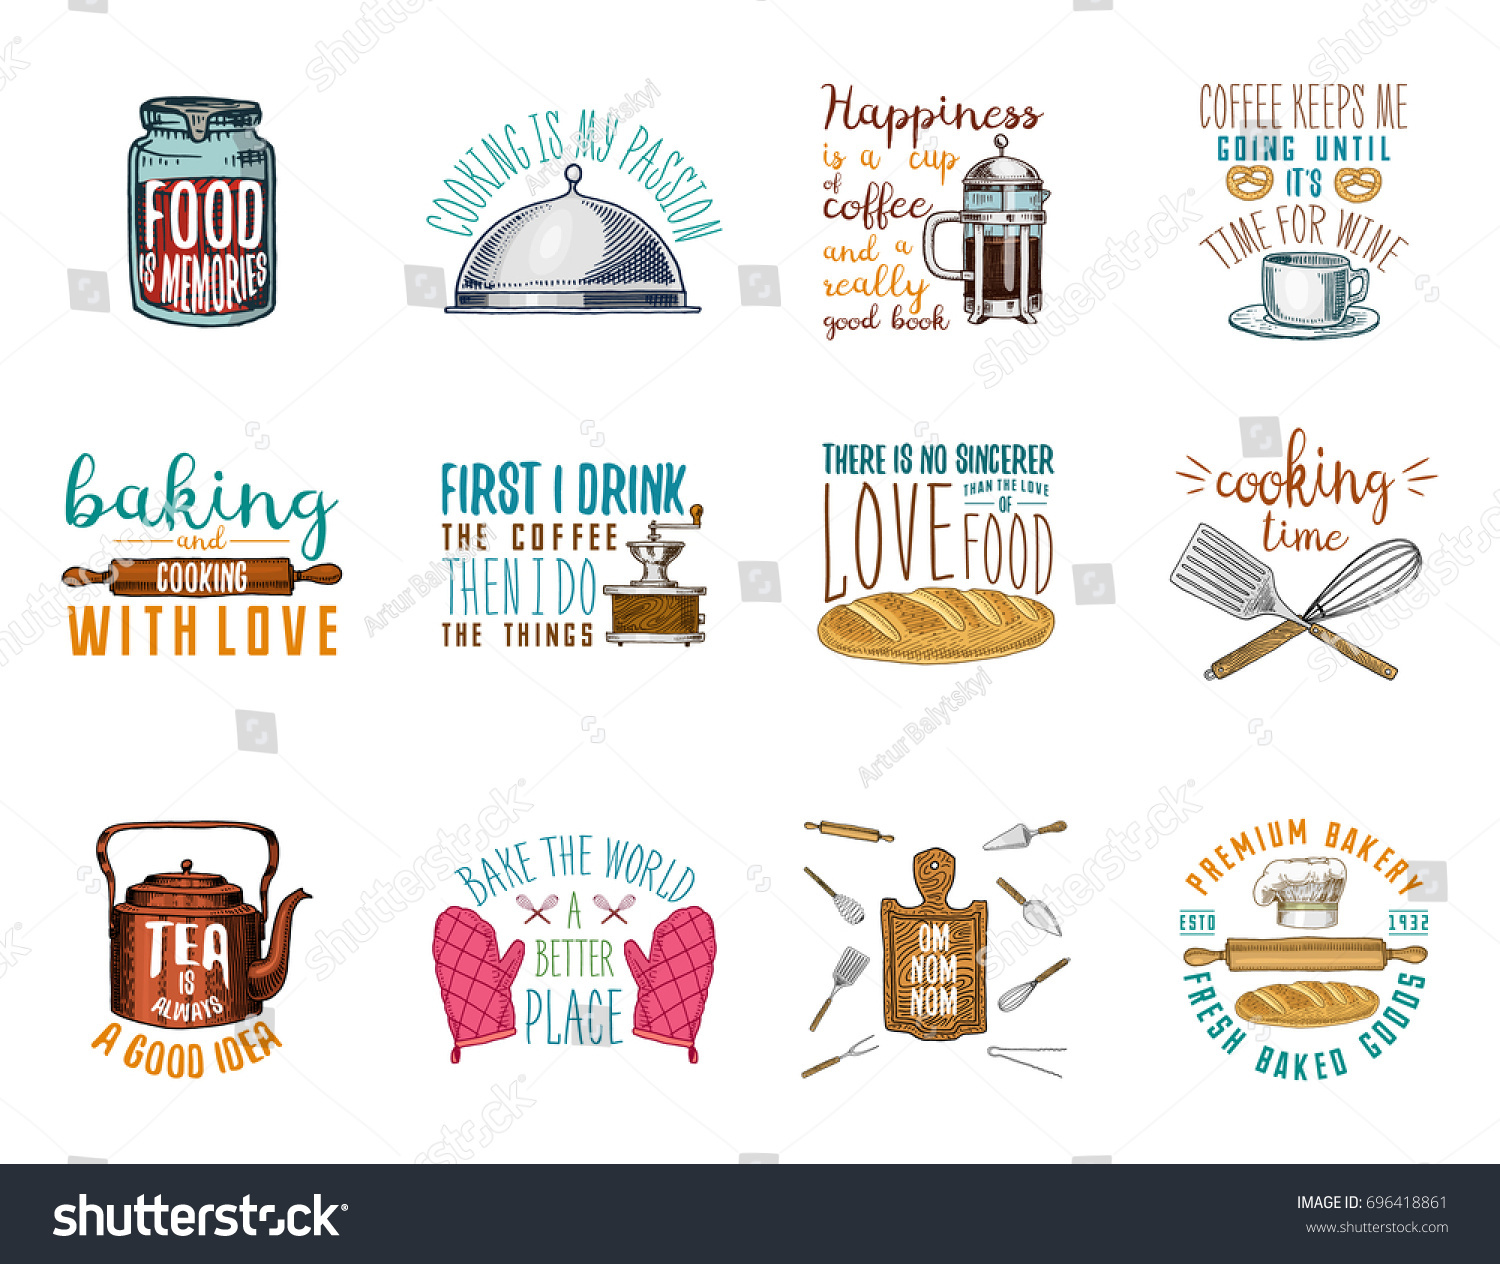 Coffee Maker Kettle French Press Rolling Stock Vector 696418861 - Shutterstock